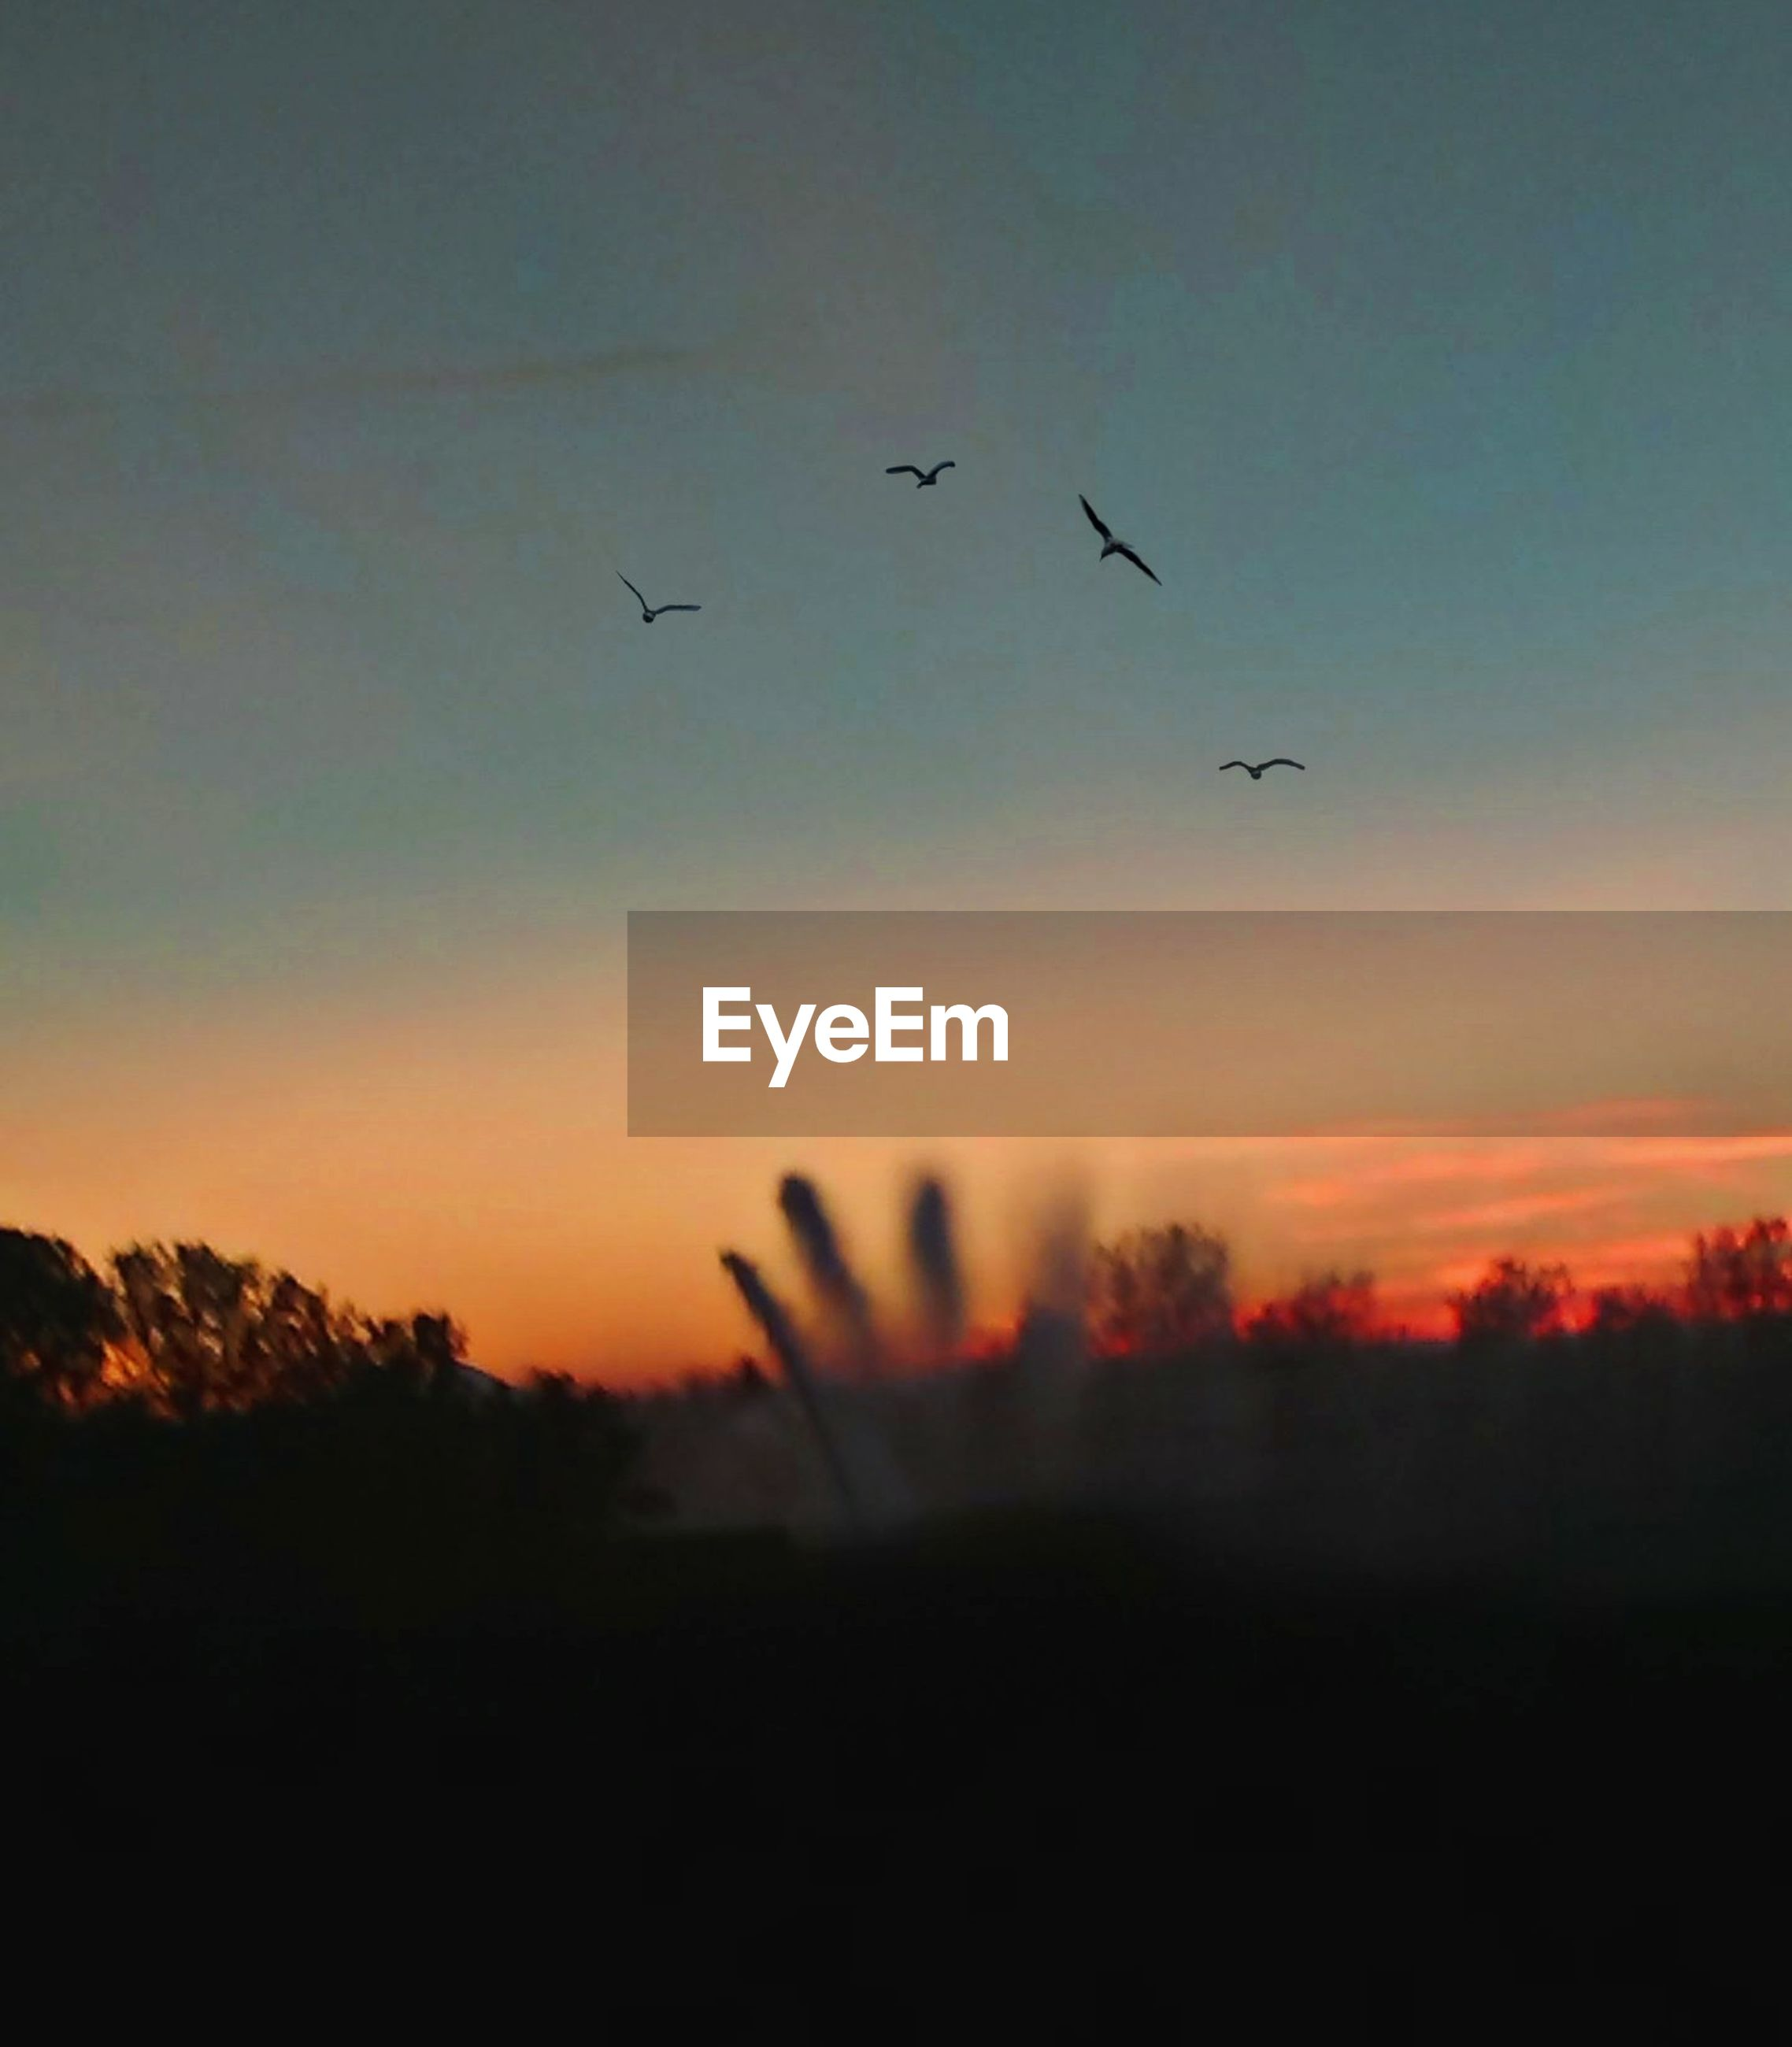 sunset, sky, silhouette, beauty in nature, vertebrate, animal themes, flying, bird, scenics - nature, animal, orange color, nature, tranquil scene, animals in the wild, tranquility, group of animals, animal wildlife, plant, no people, cloud - sky, outdoors